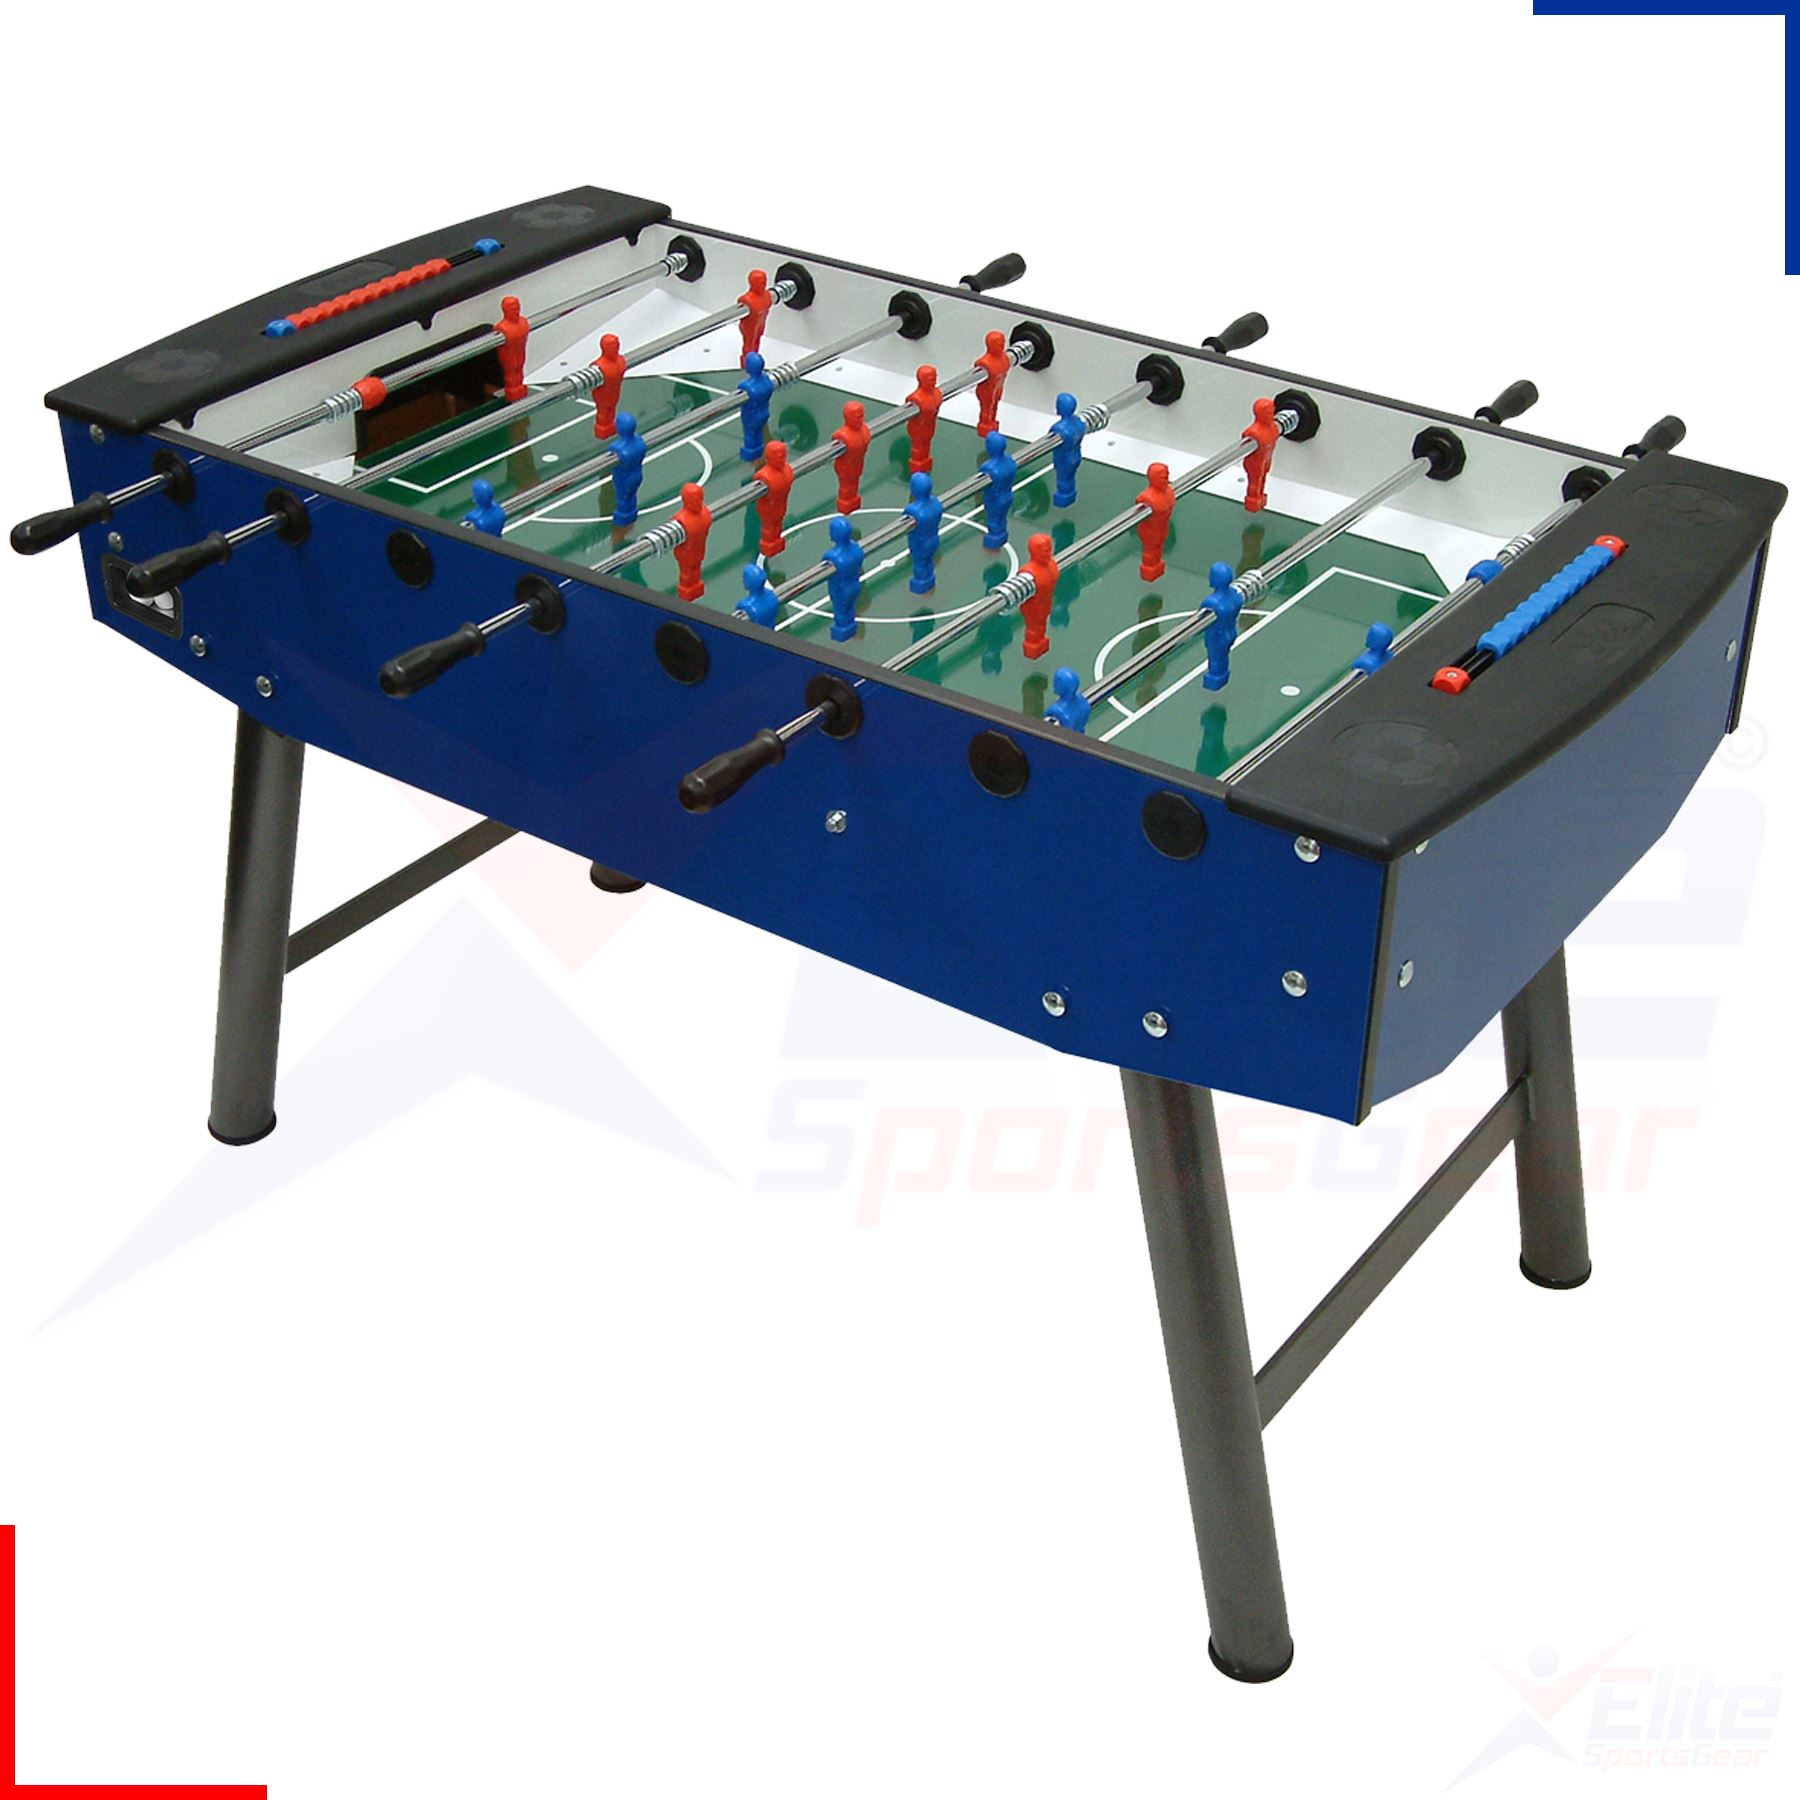 Fun Full Size Italian Professional Foosball Soccer Table Football - Italian foosball table